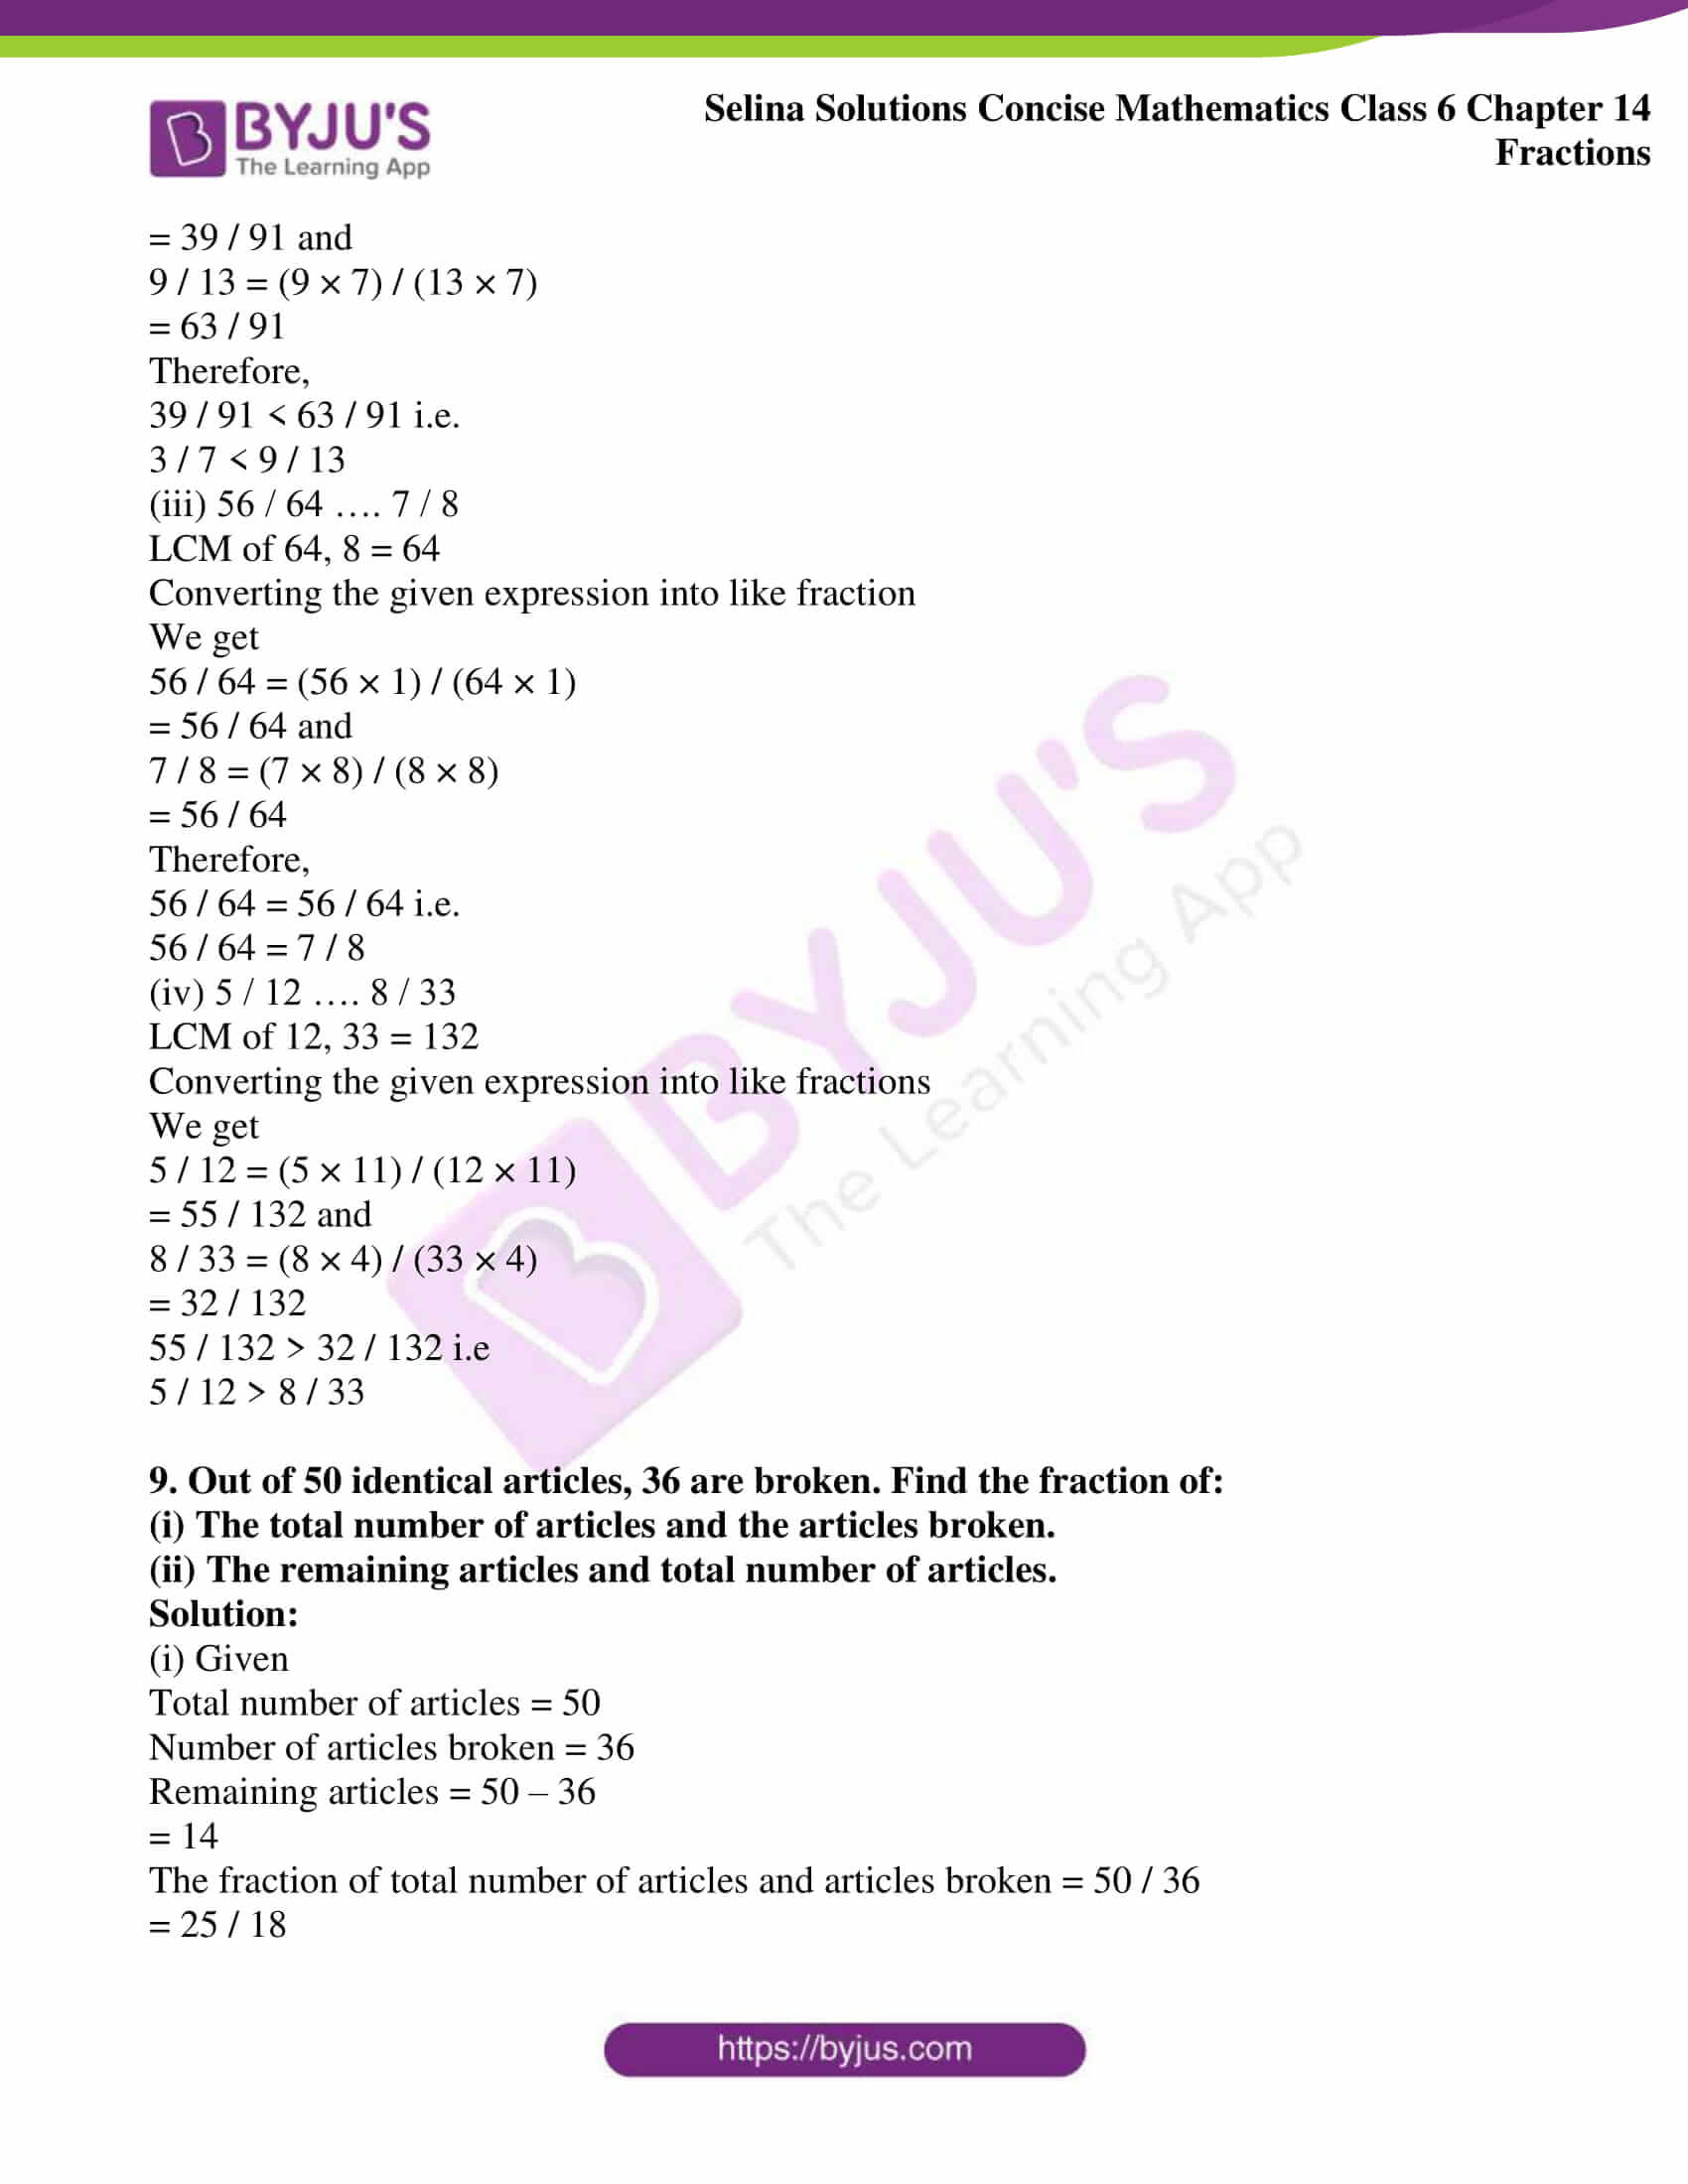 selina solution concise maths class 6 chapter 14 ex b 09